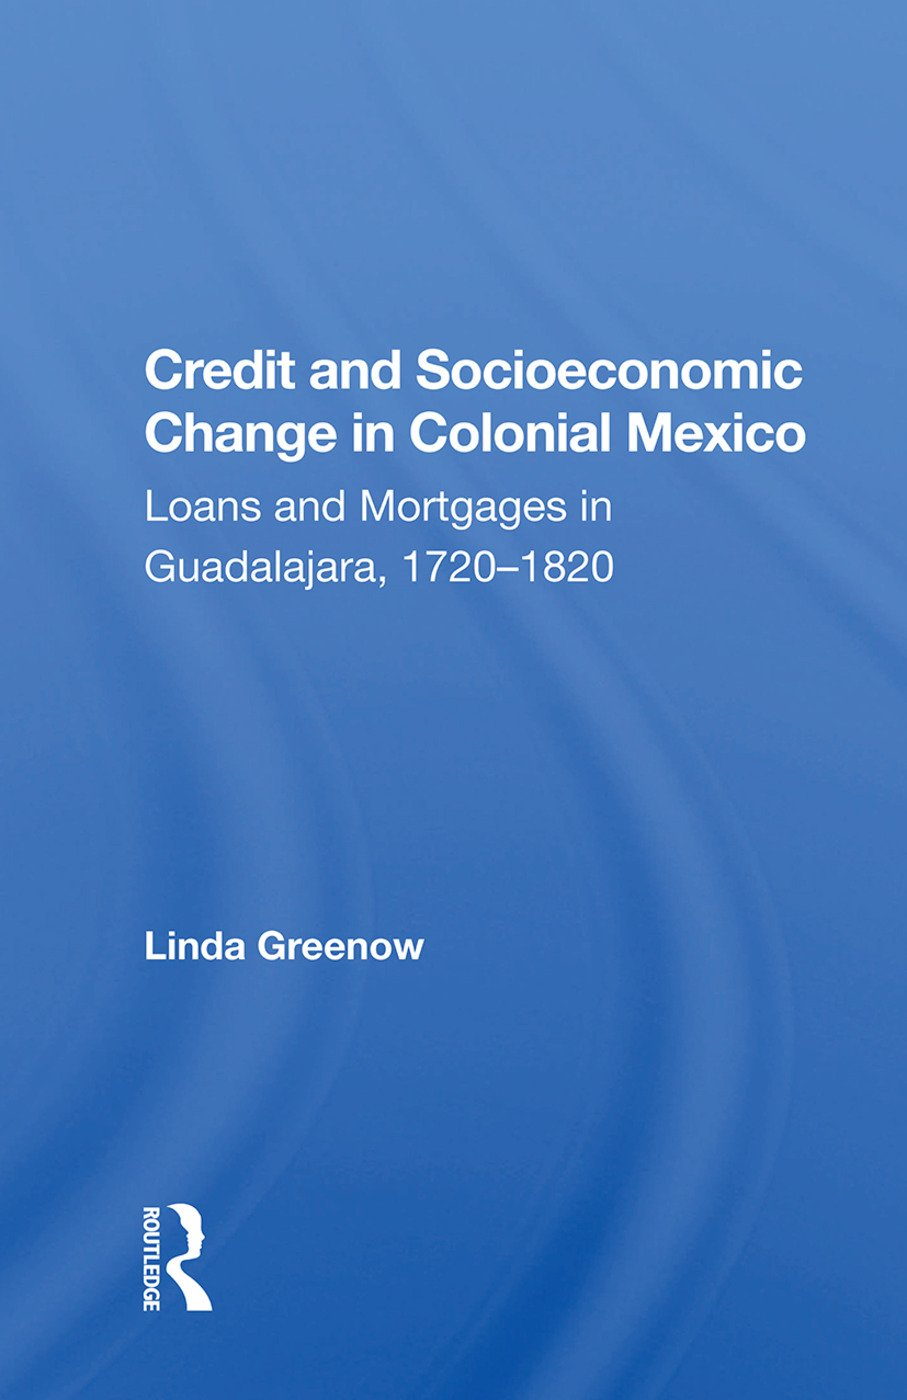 Credit And Socioeconomic Change In Colonial Mexico: Loans And Mortgages In Guadalajara, 1720-1820 book cover